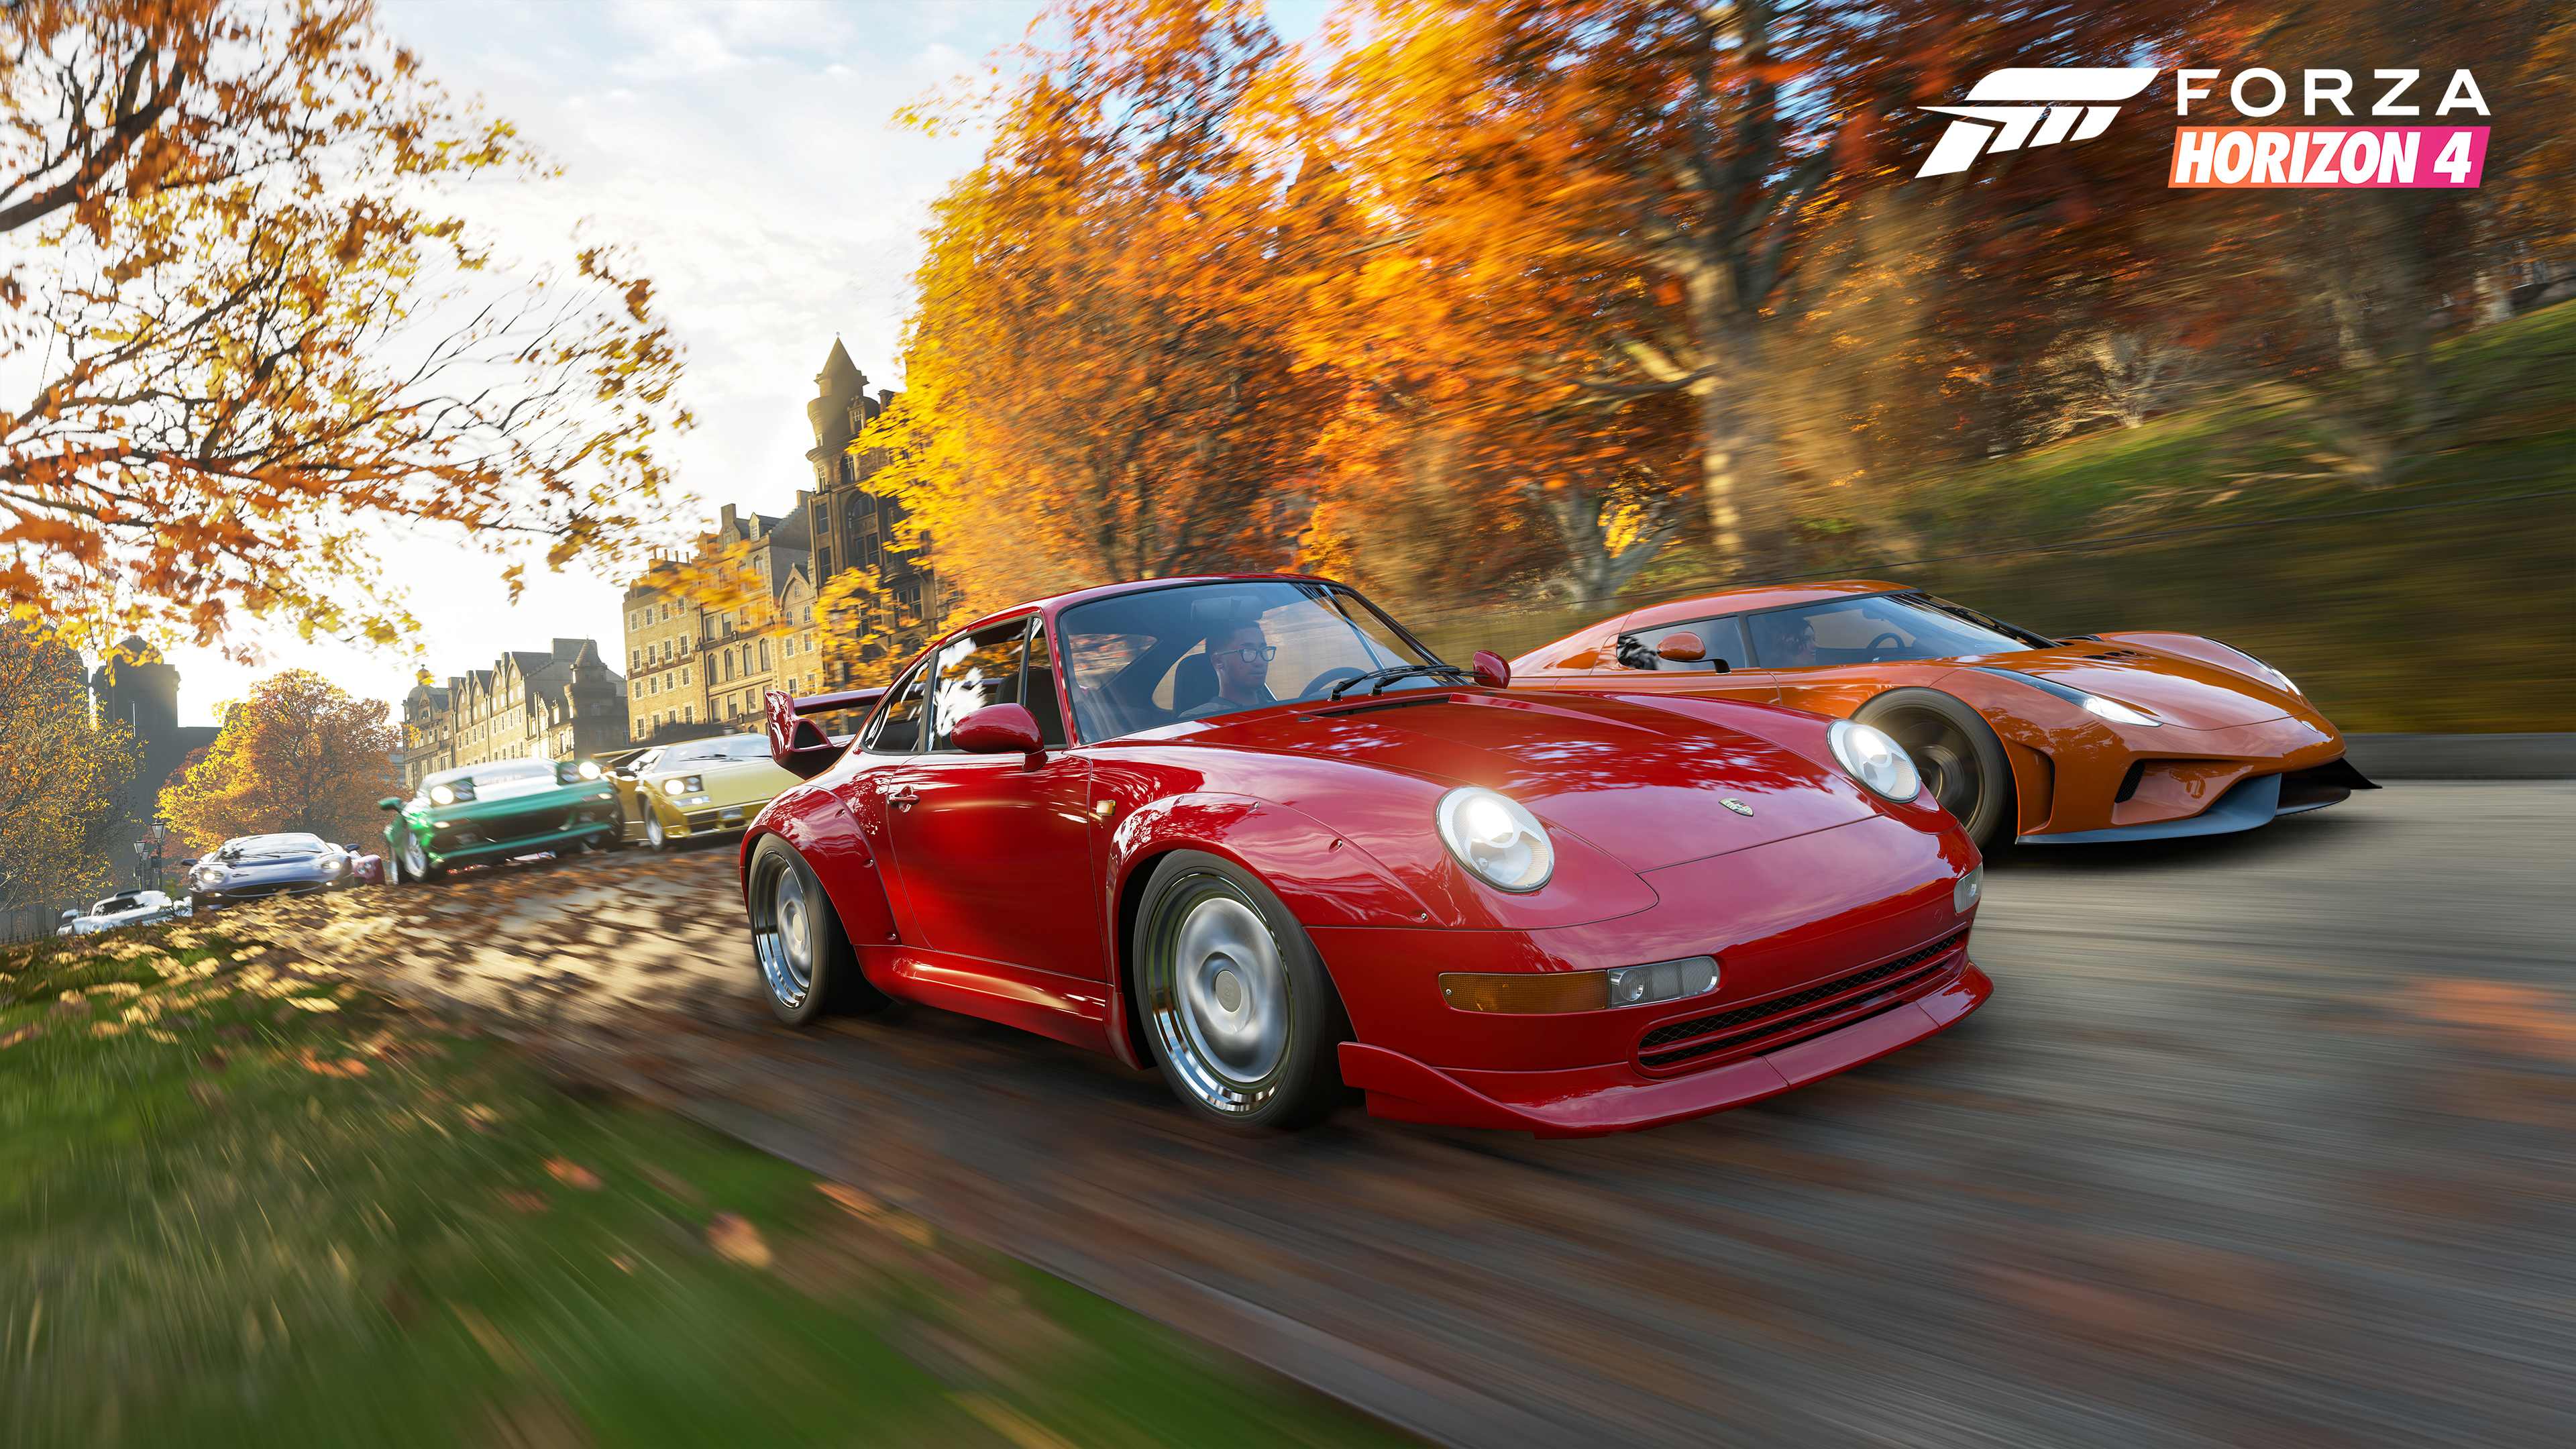 The best parts of forza horizon 4 have nothing to do with racing